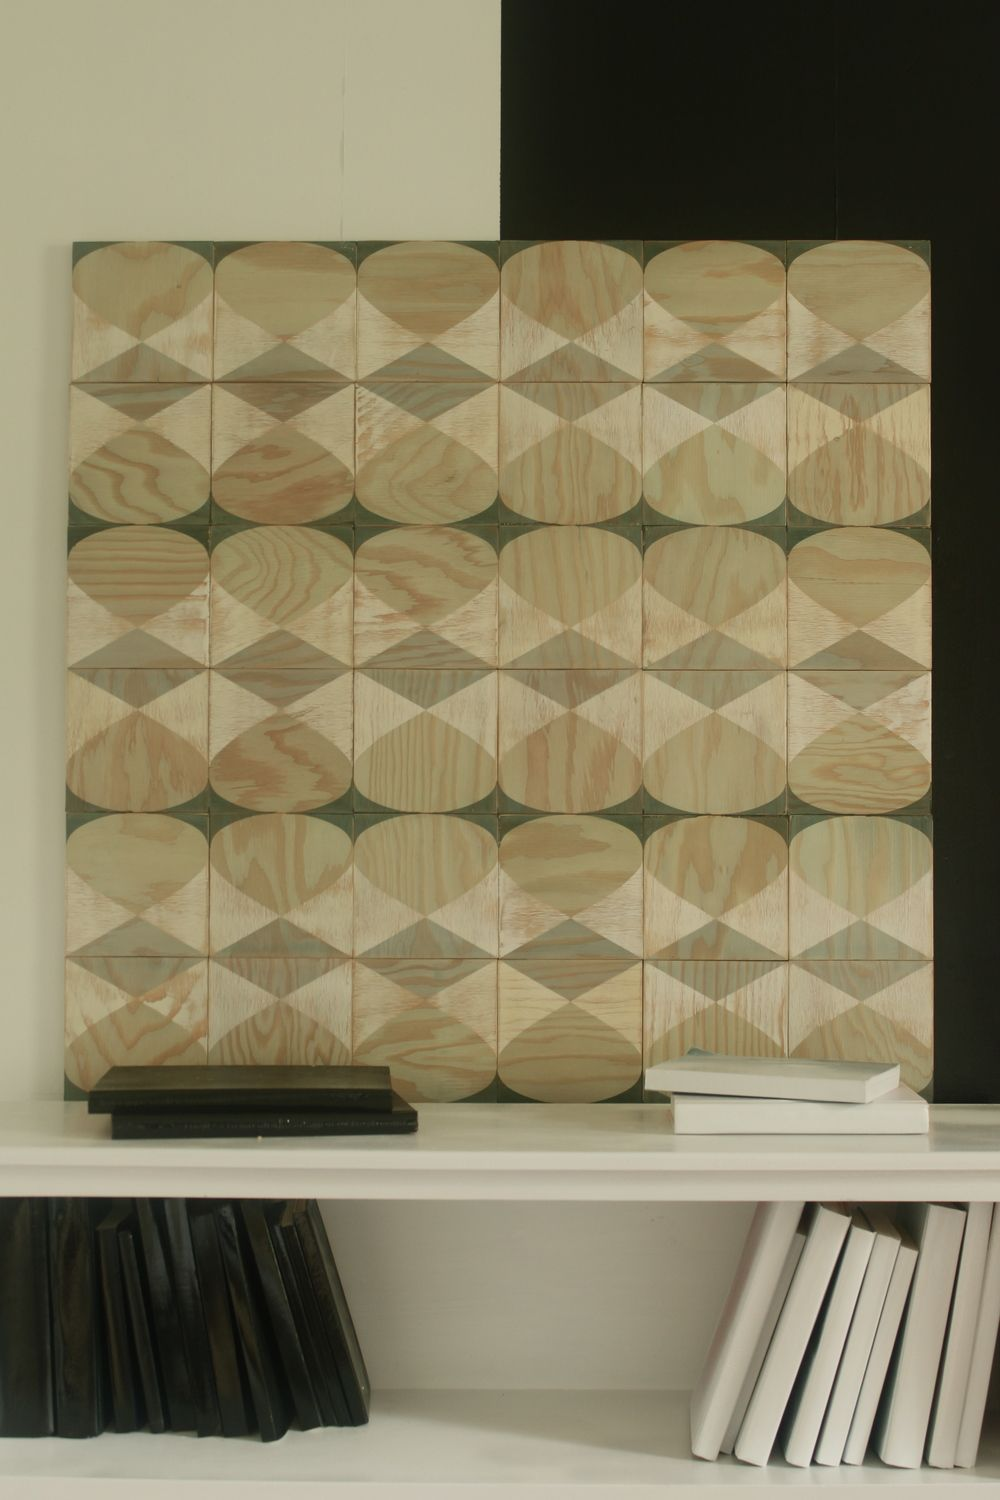 Moonish plywood tiles combine the geometries of traditional tiles moonish plywood tiles combine the geometries of traditional tiles with the texture and variations dailygadgetfo Images